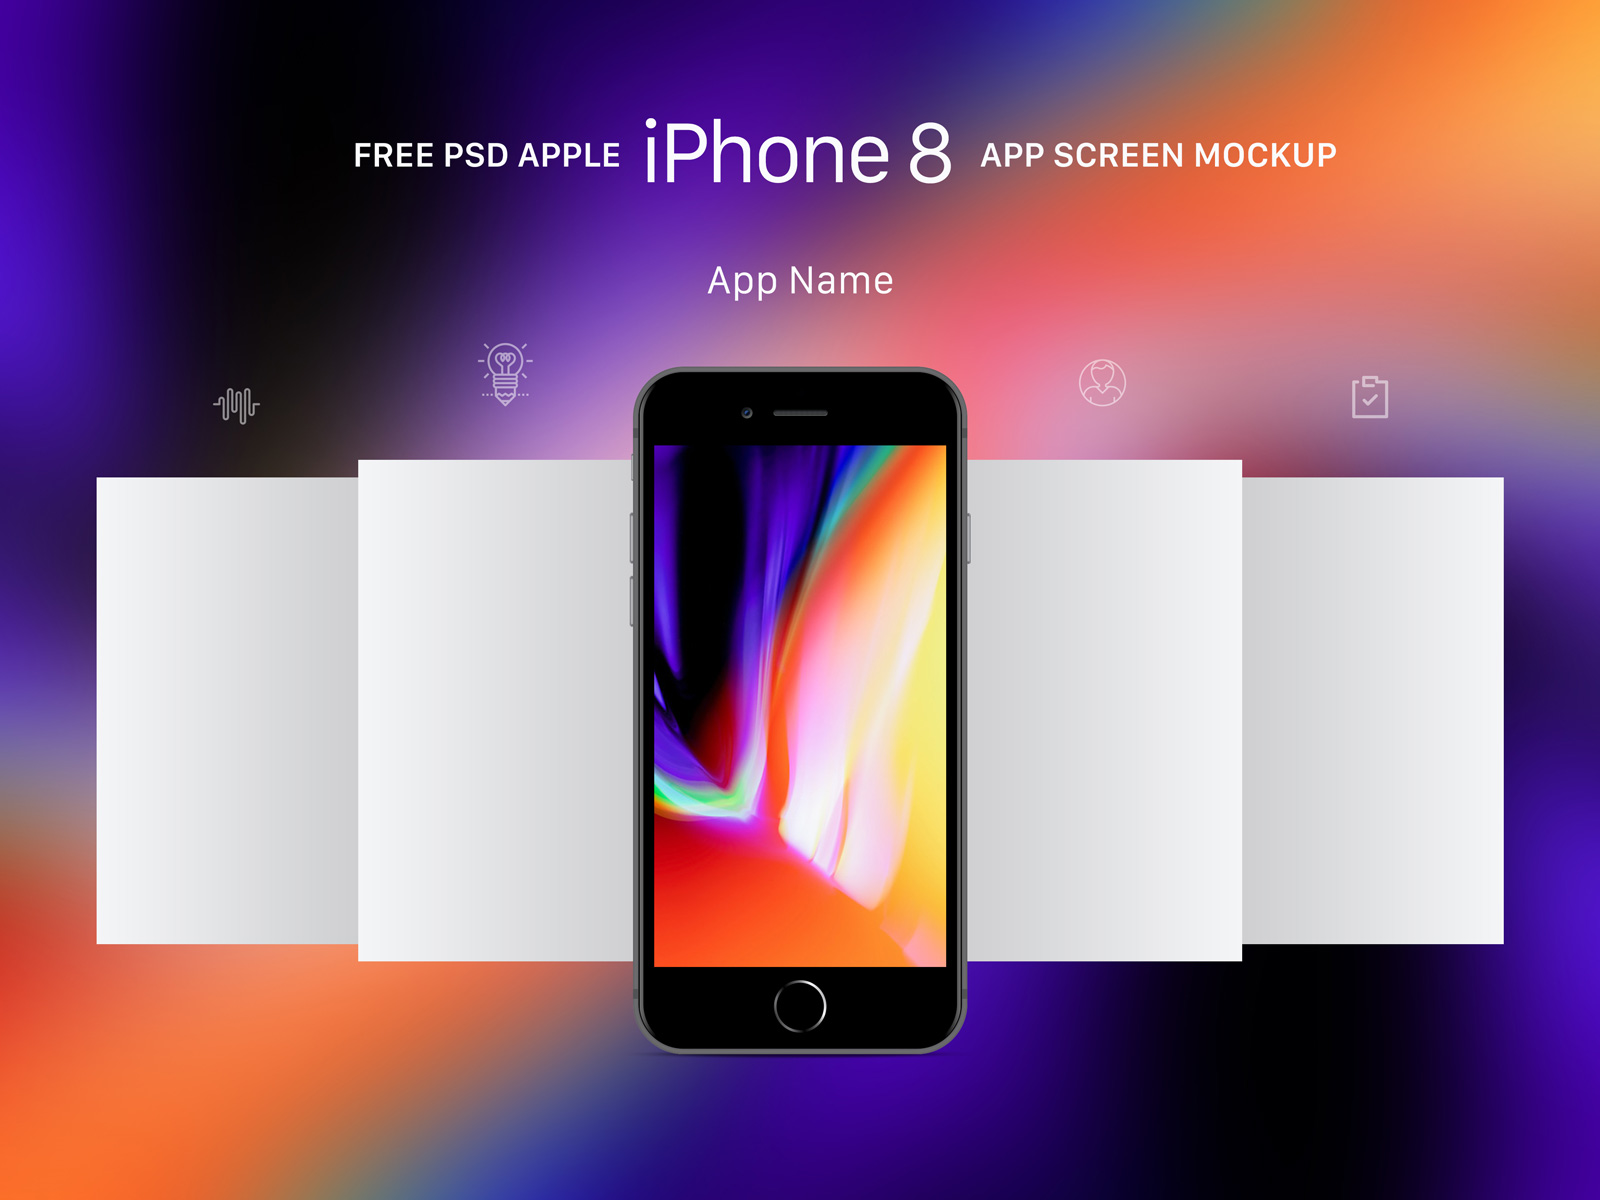 Free apple gold gray space gray iphone 8 app screen mockup psd free space gray apple iphone 8 app screen mockup psd thecheapjerseys Image collections